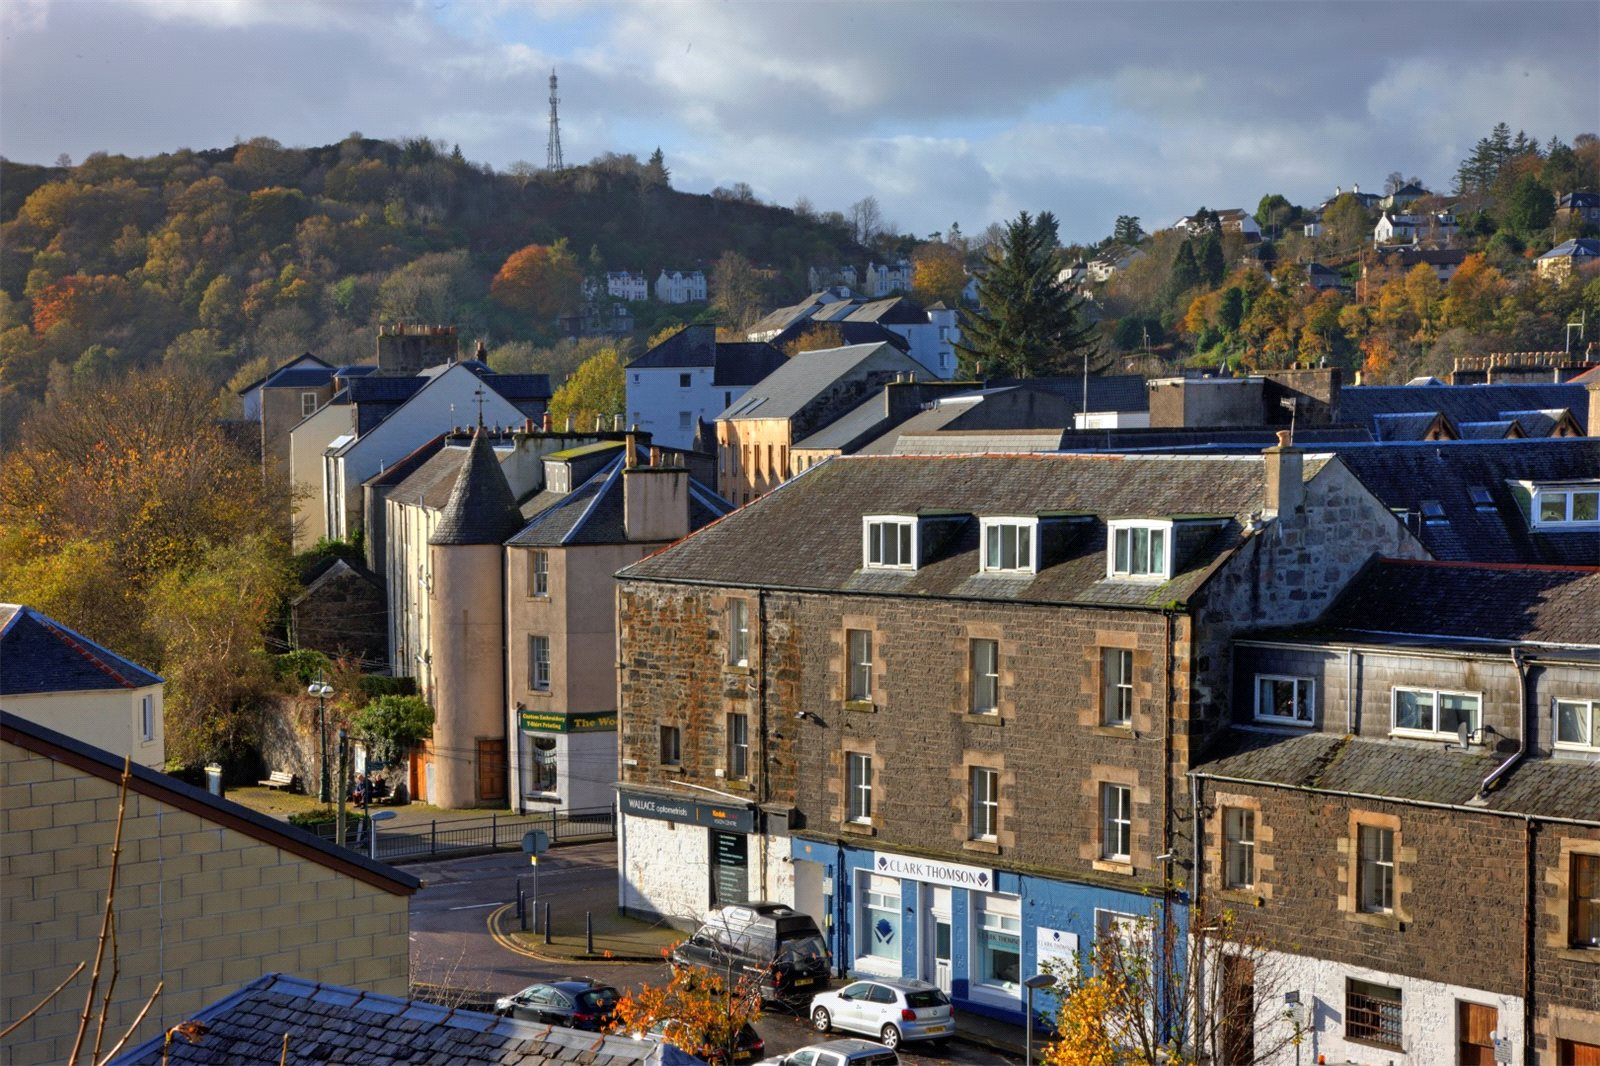 2 Bedrooms Apartment Flat for sale in 21 Airds Crescent, Oban, Argyll and Bute, PA34